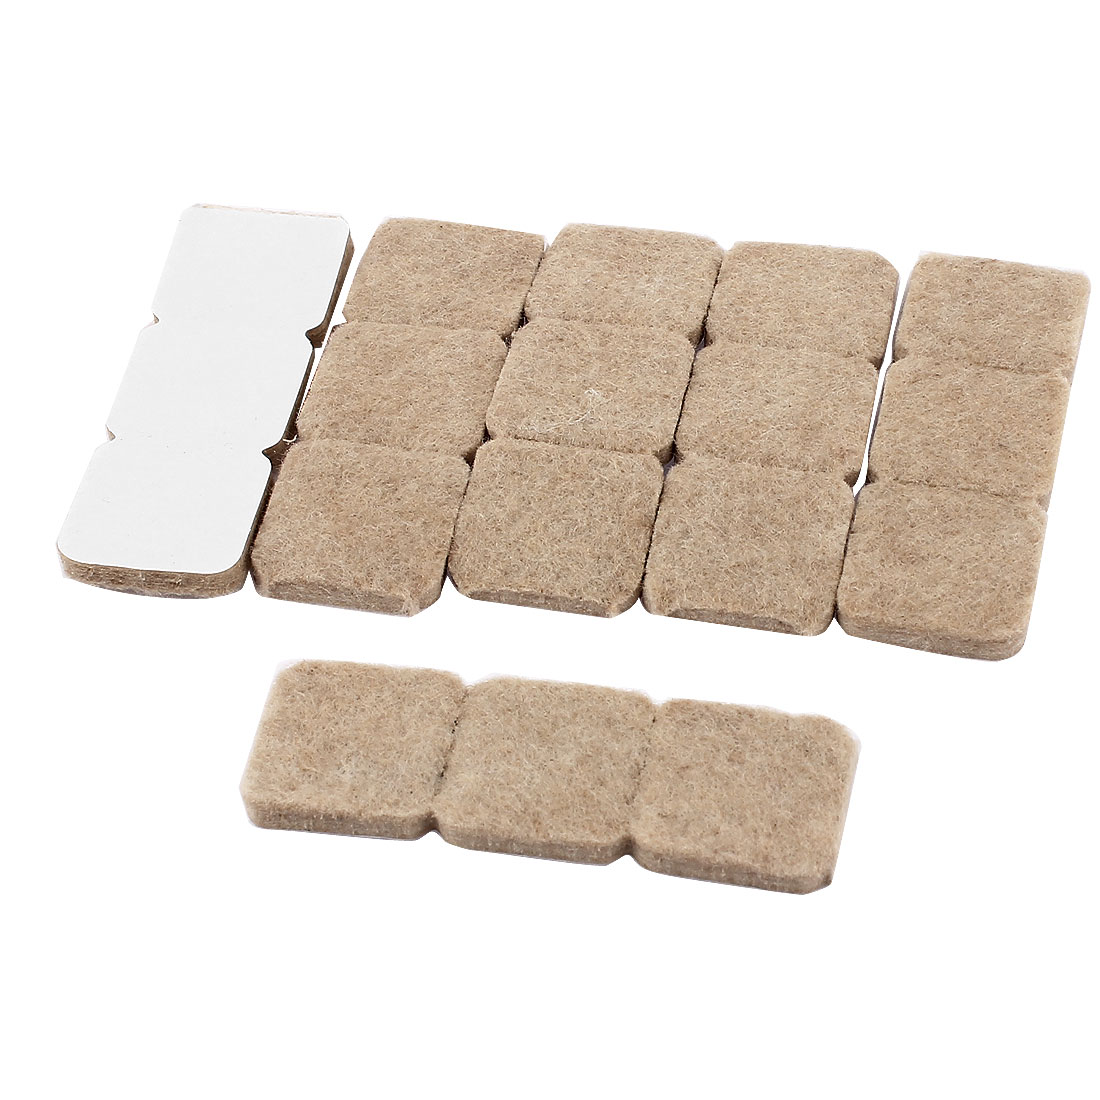 Felt Furniture Pads Walmart Helping Hand Assorted Felt Furniture Guard Glides Tips And Pads